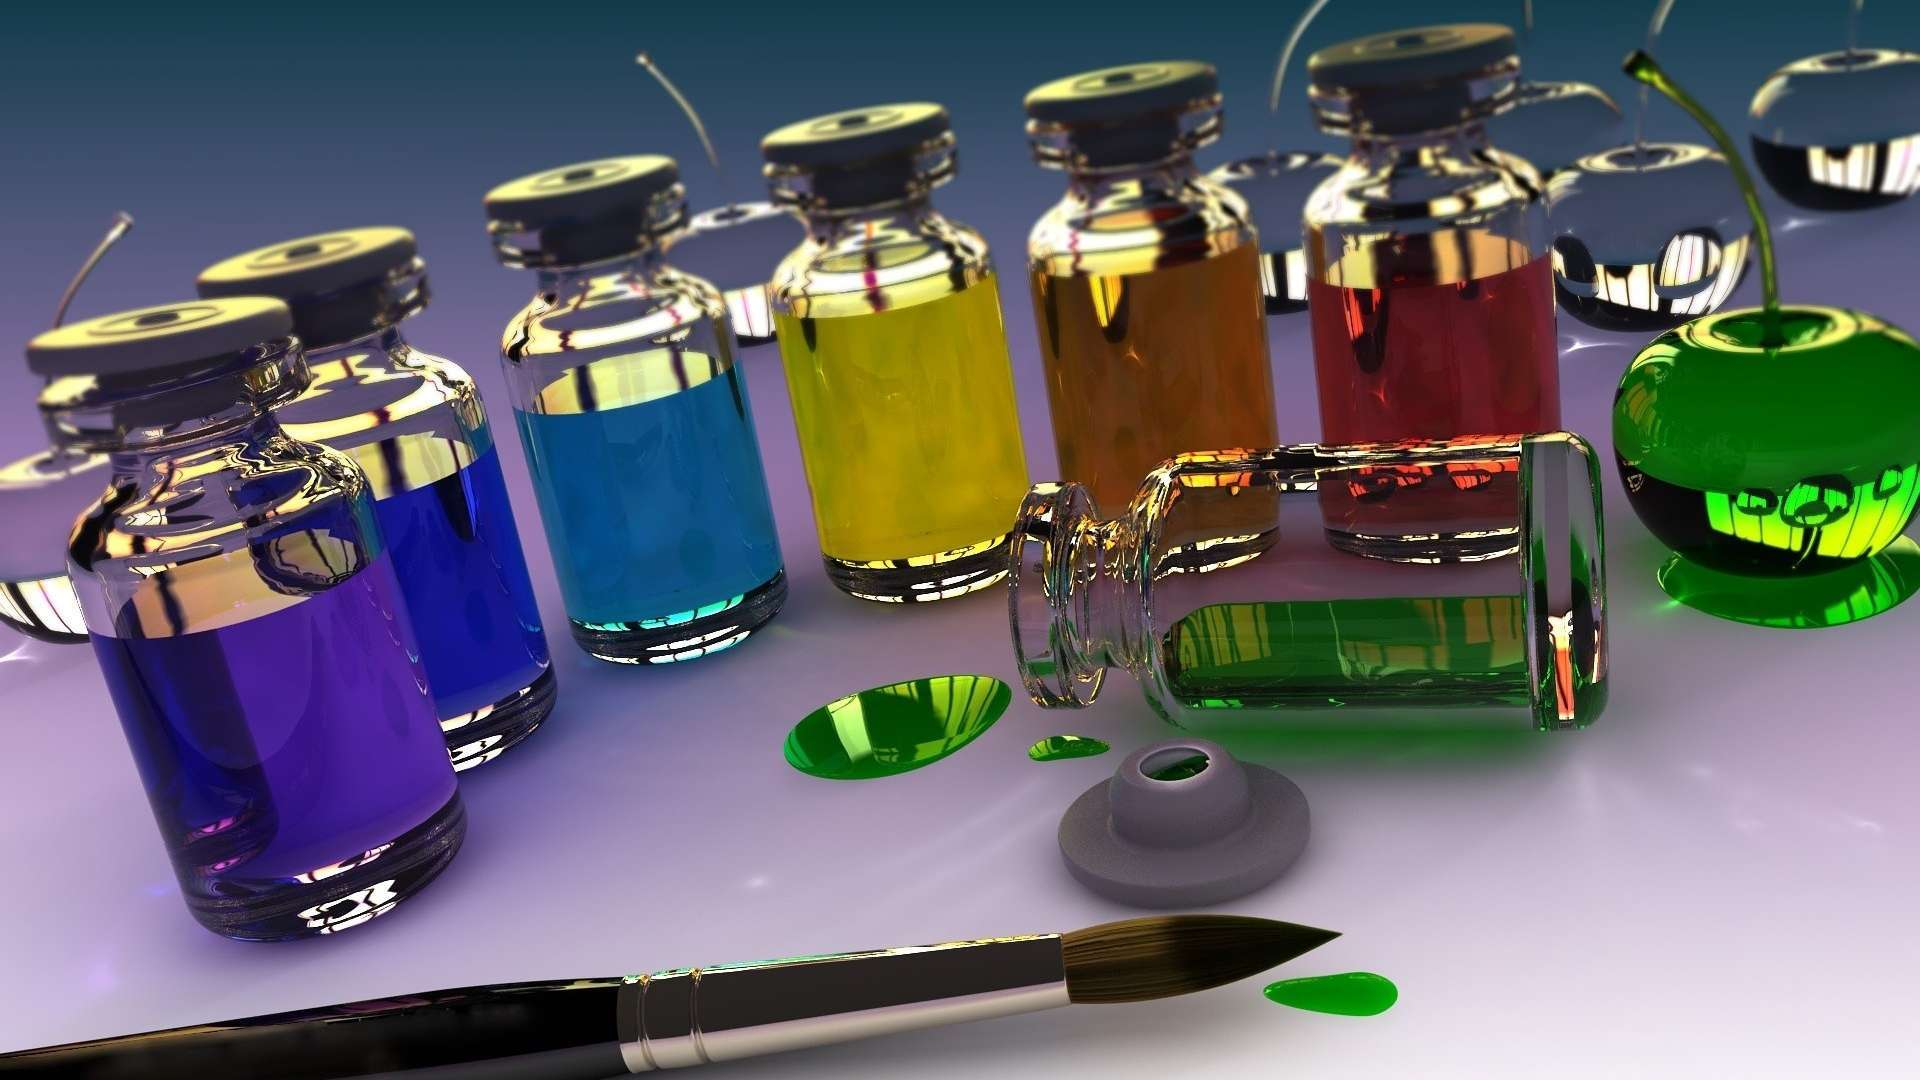 Wallpaper 3d Banks Brush Paint Glass Hd Wallpaper 1080p Upload at 1920x1080